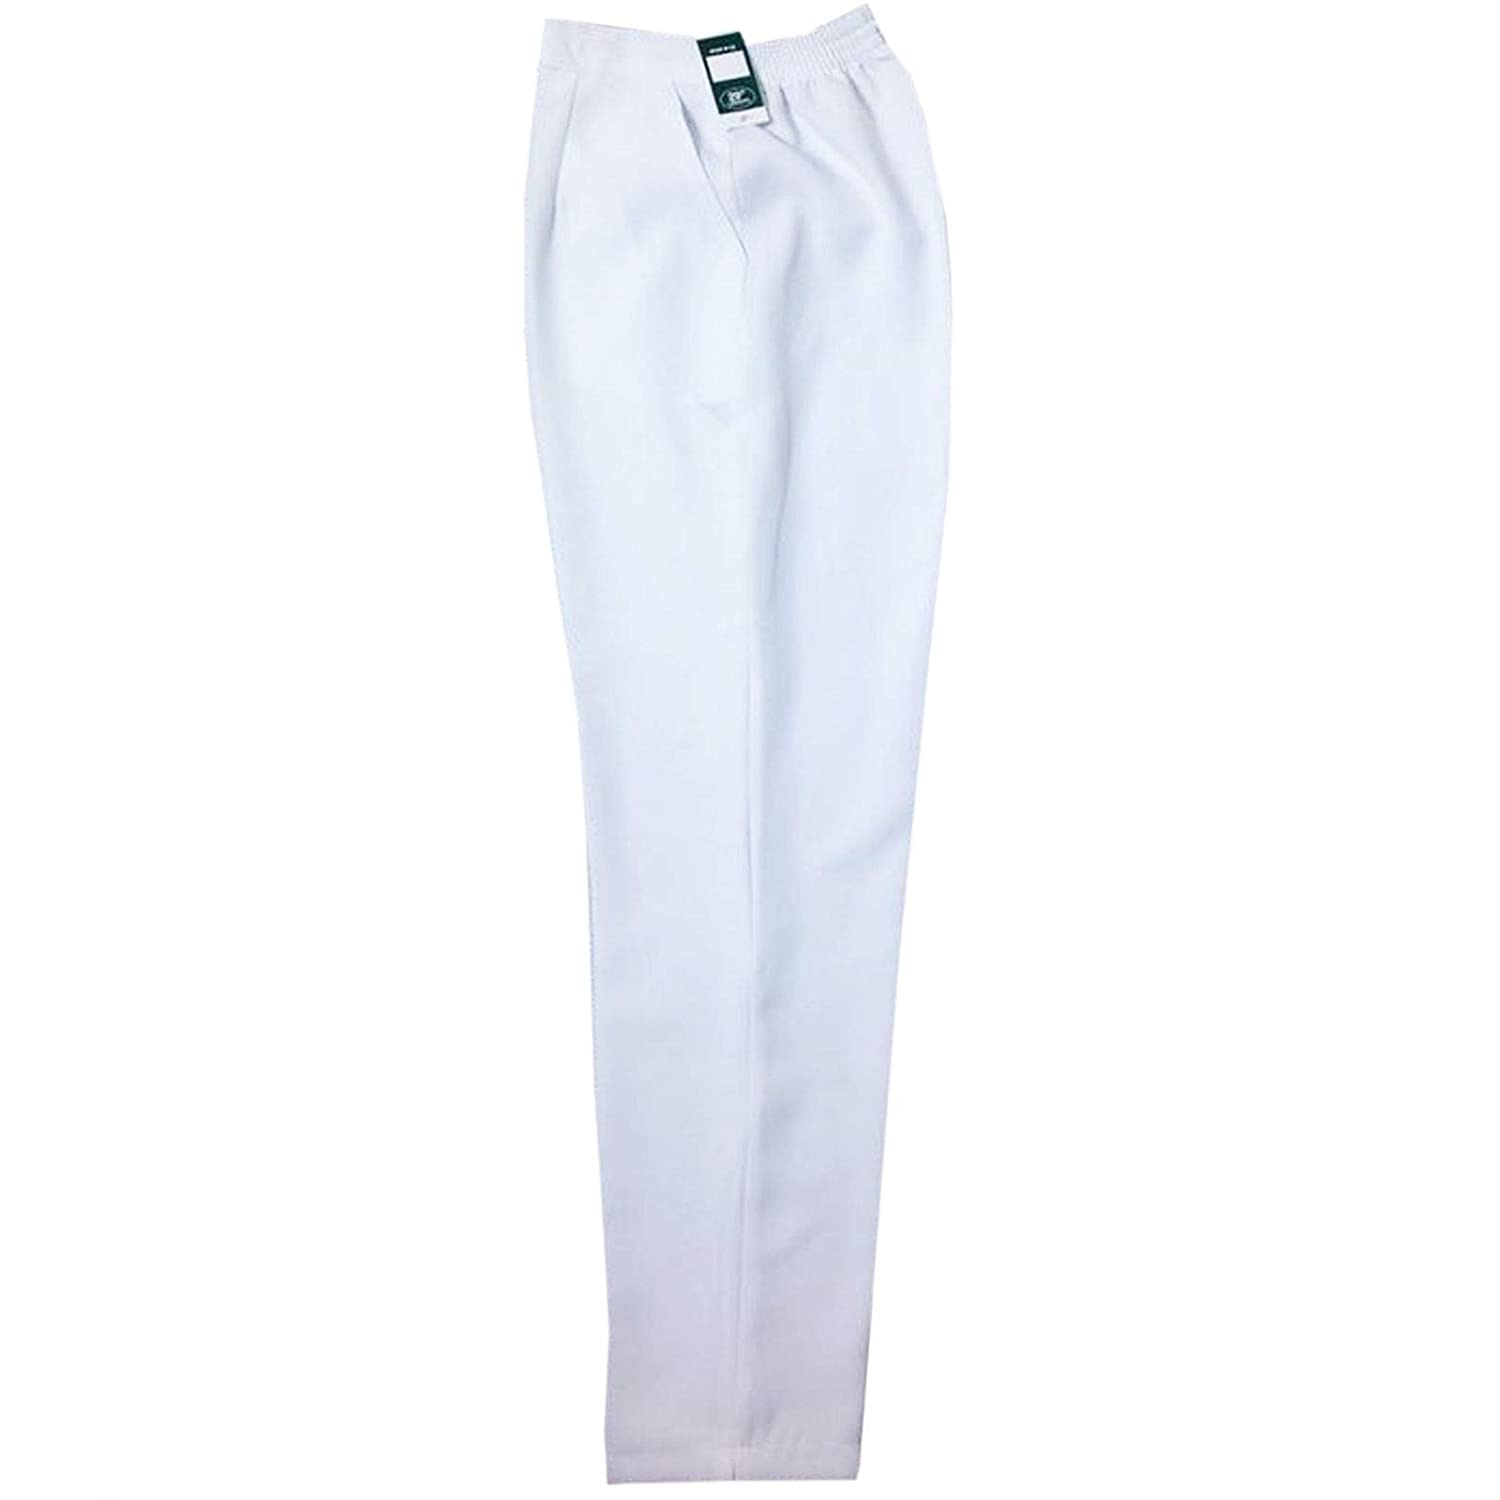 Inspire Me Ladies Womens Half Elasticated Waist Work Trousers Stretch Trousers with Pockets Pants Machine Washable Ladies Casual Trousers